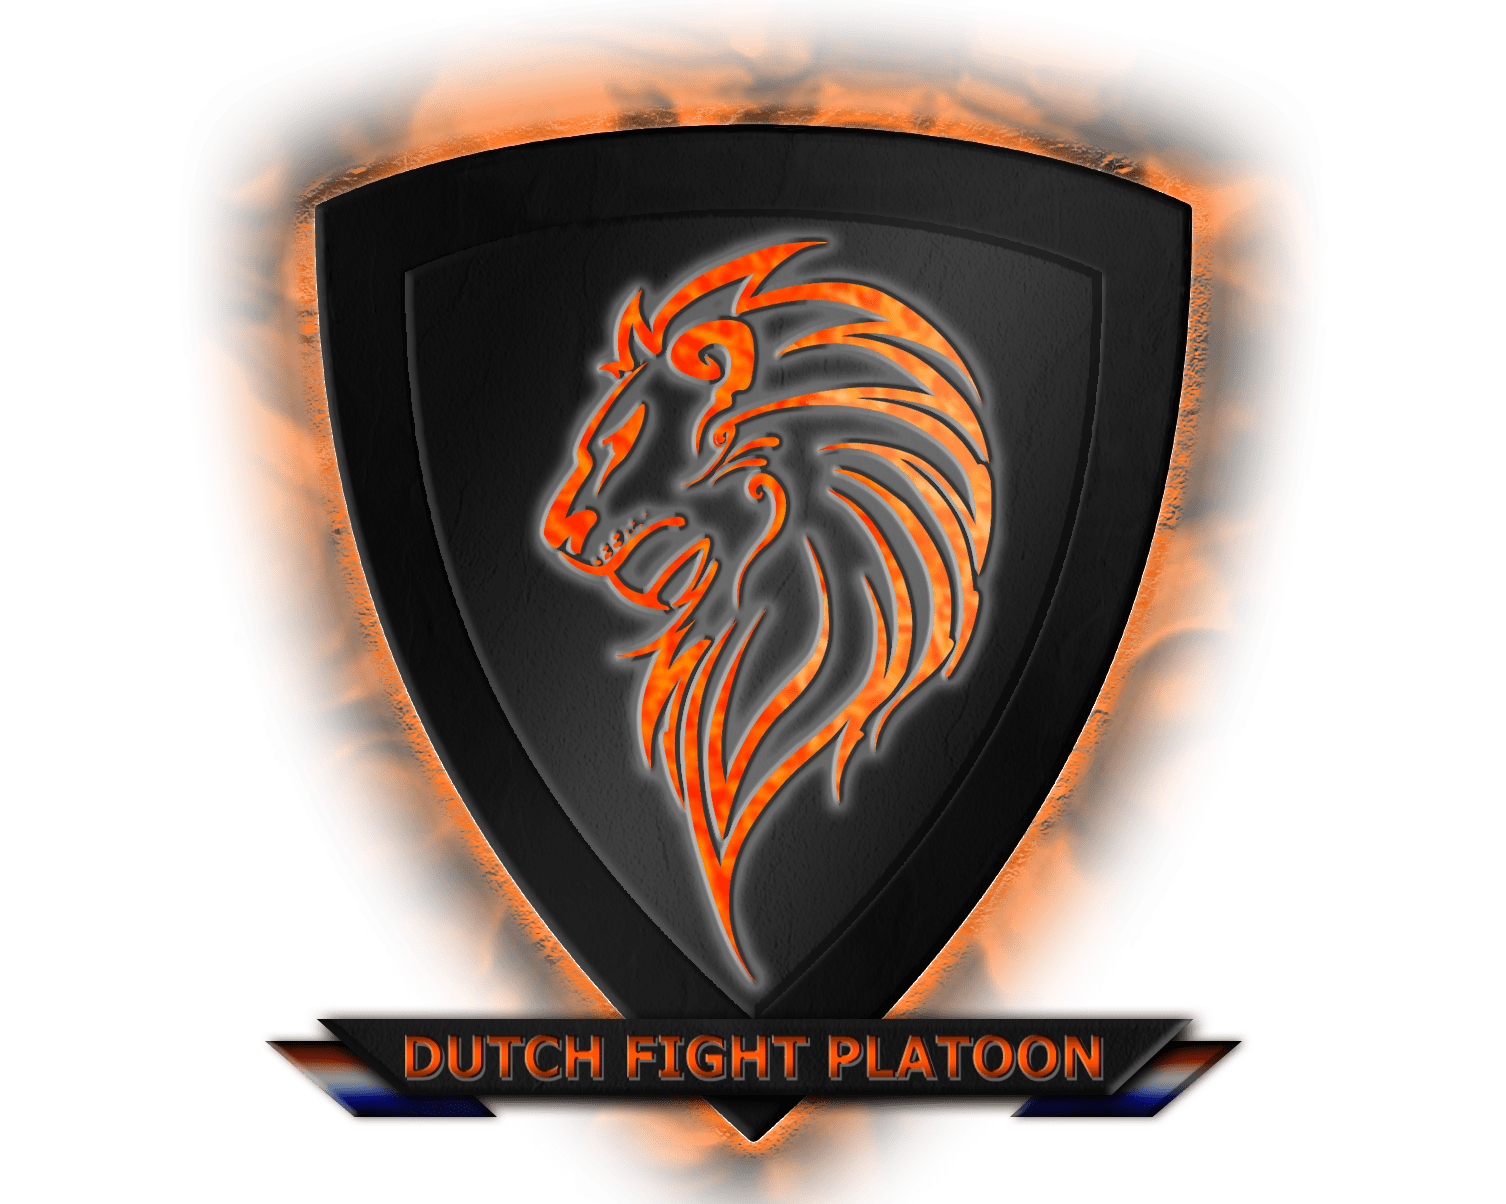 Dutch Fight Platoon